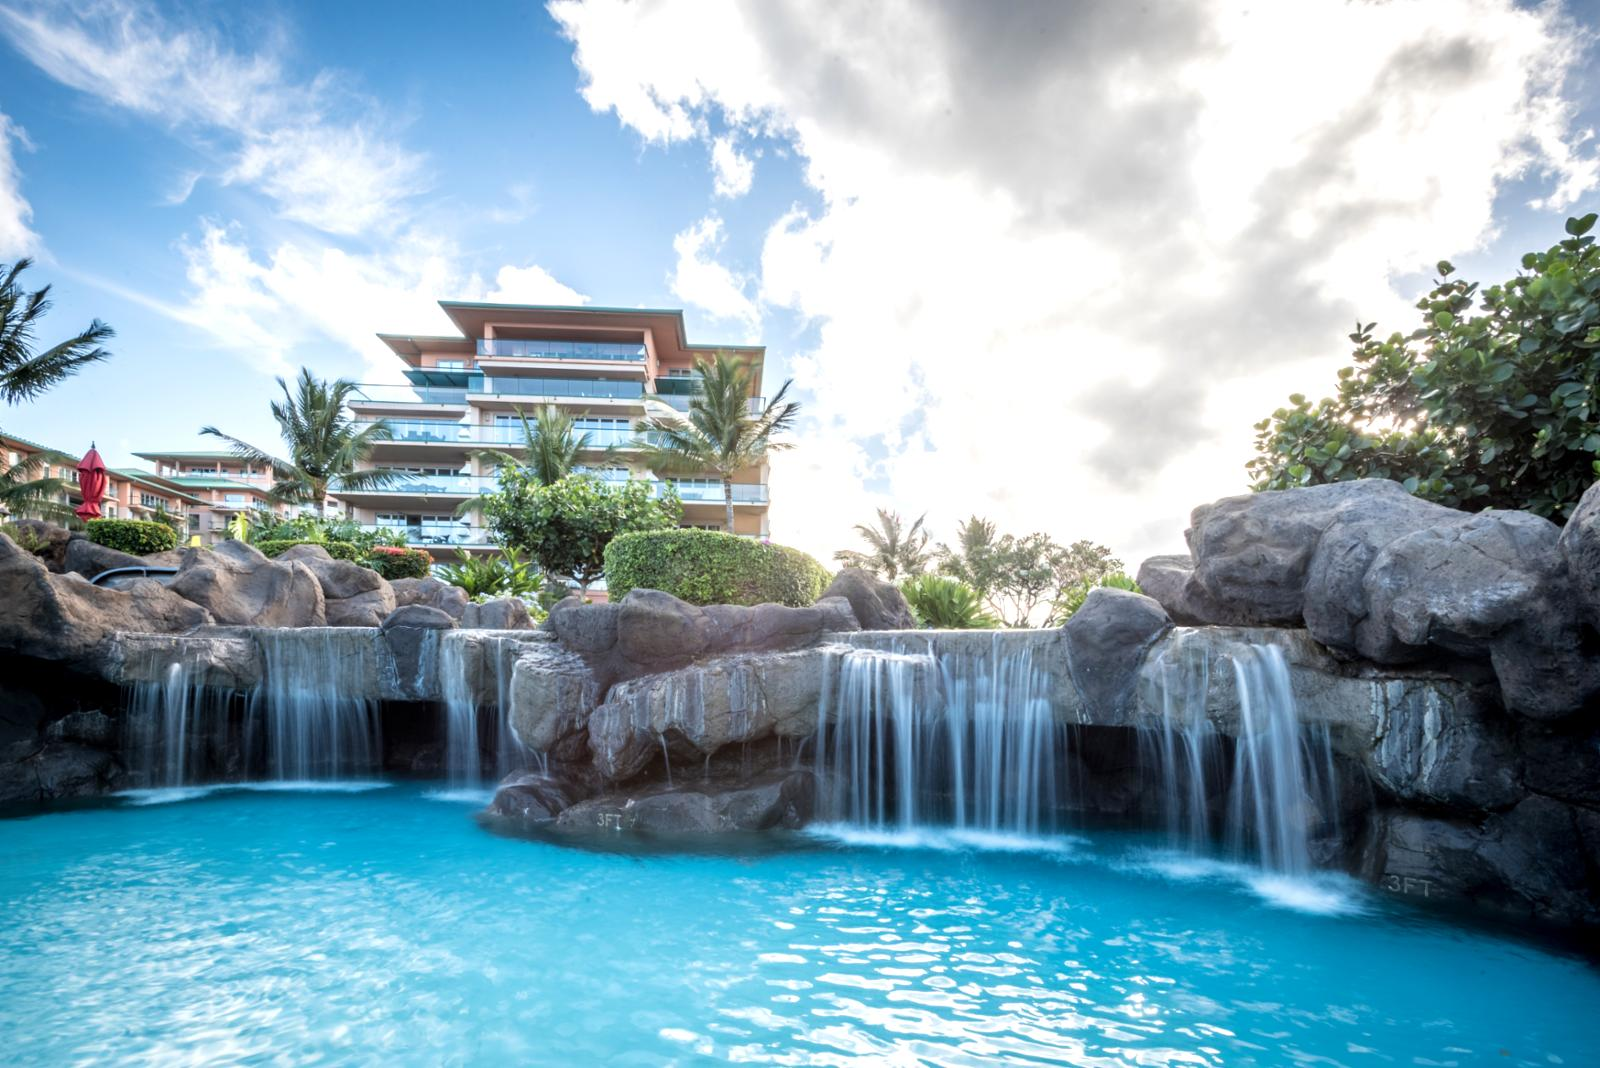 Luxury waterfall to swim through, perfect for relaxation